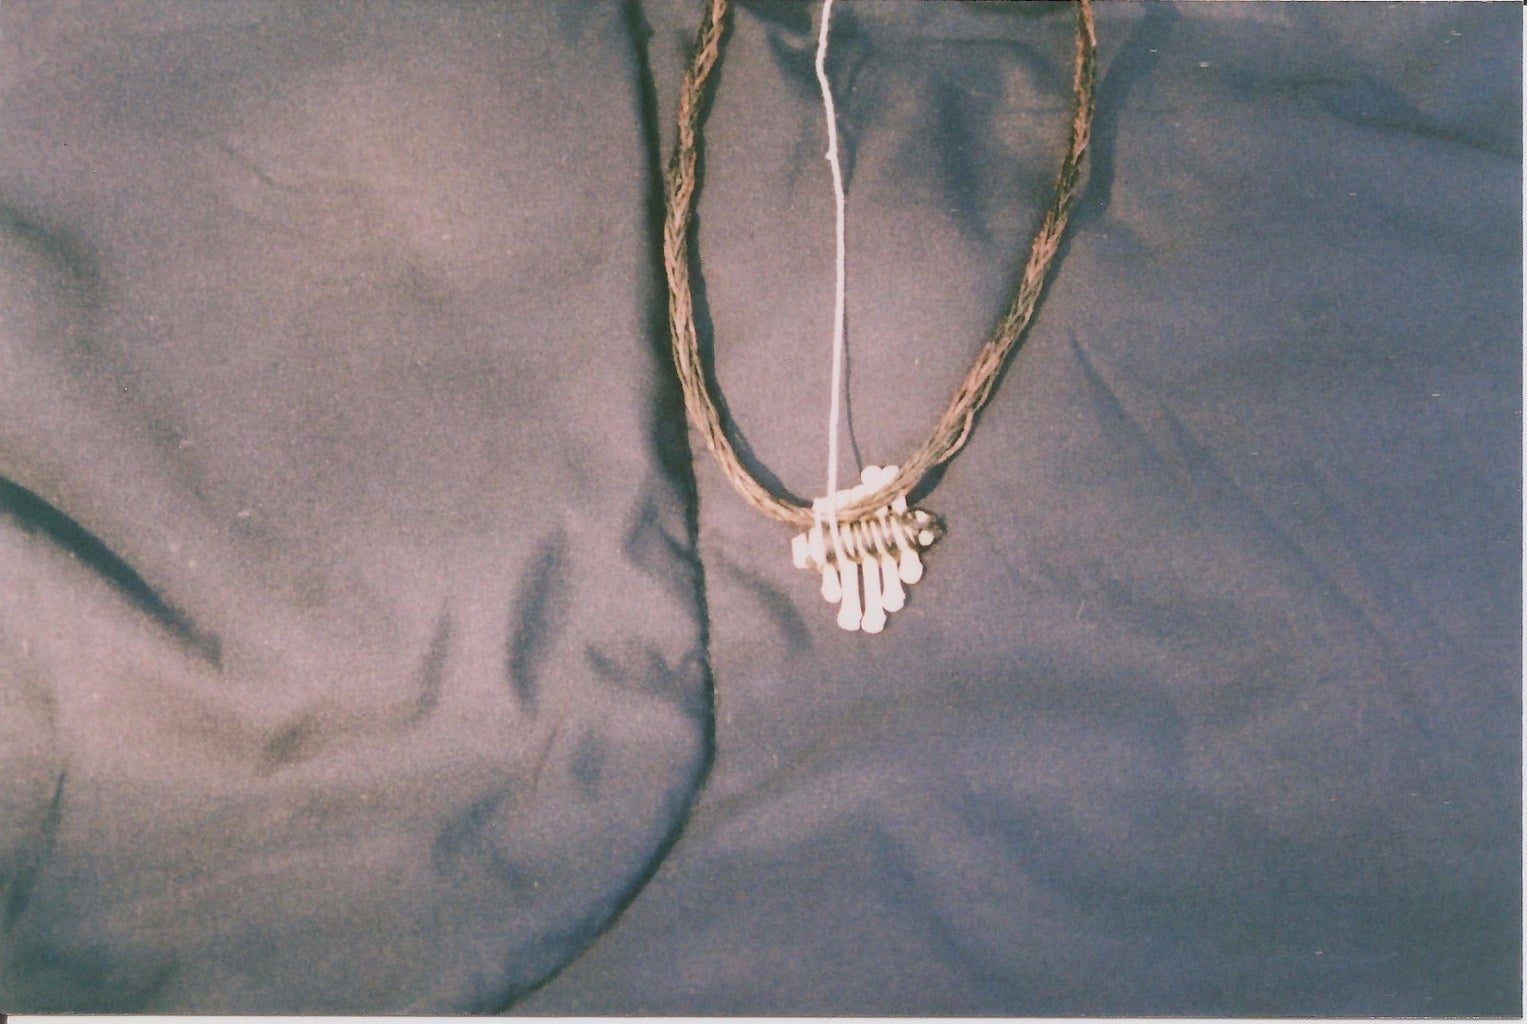 Combining the Pendant and the Necklace